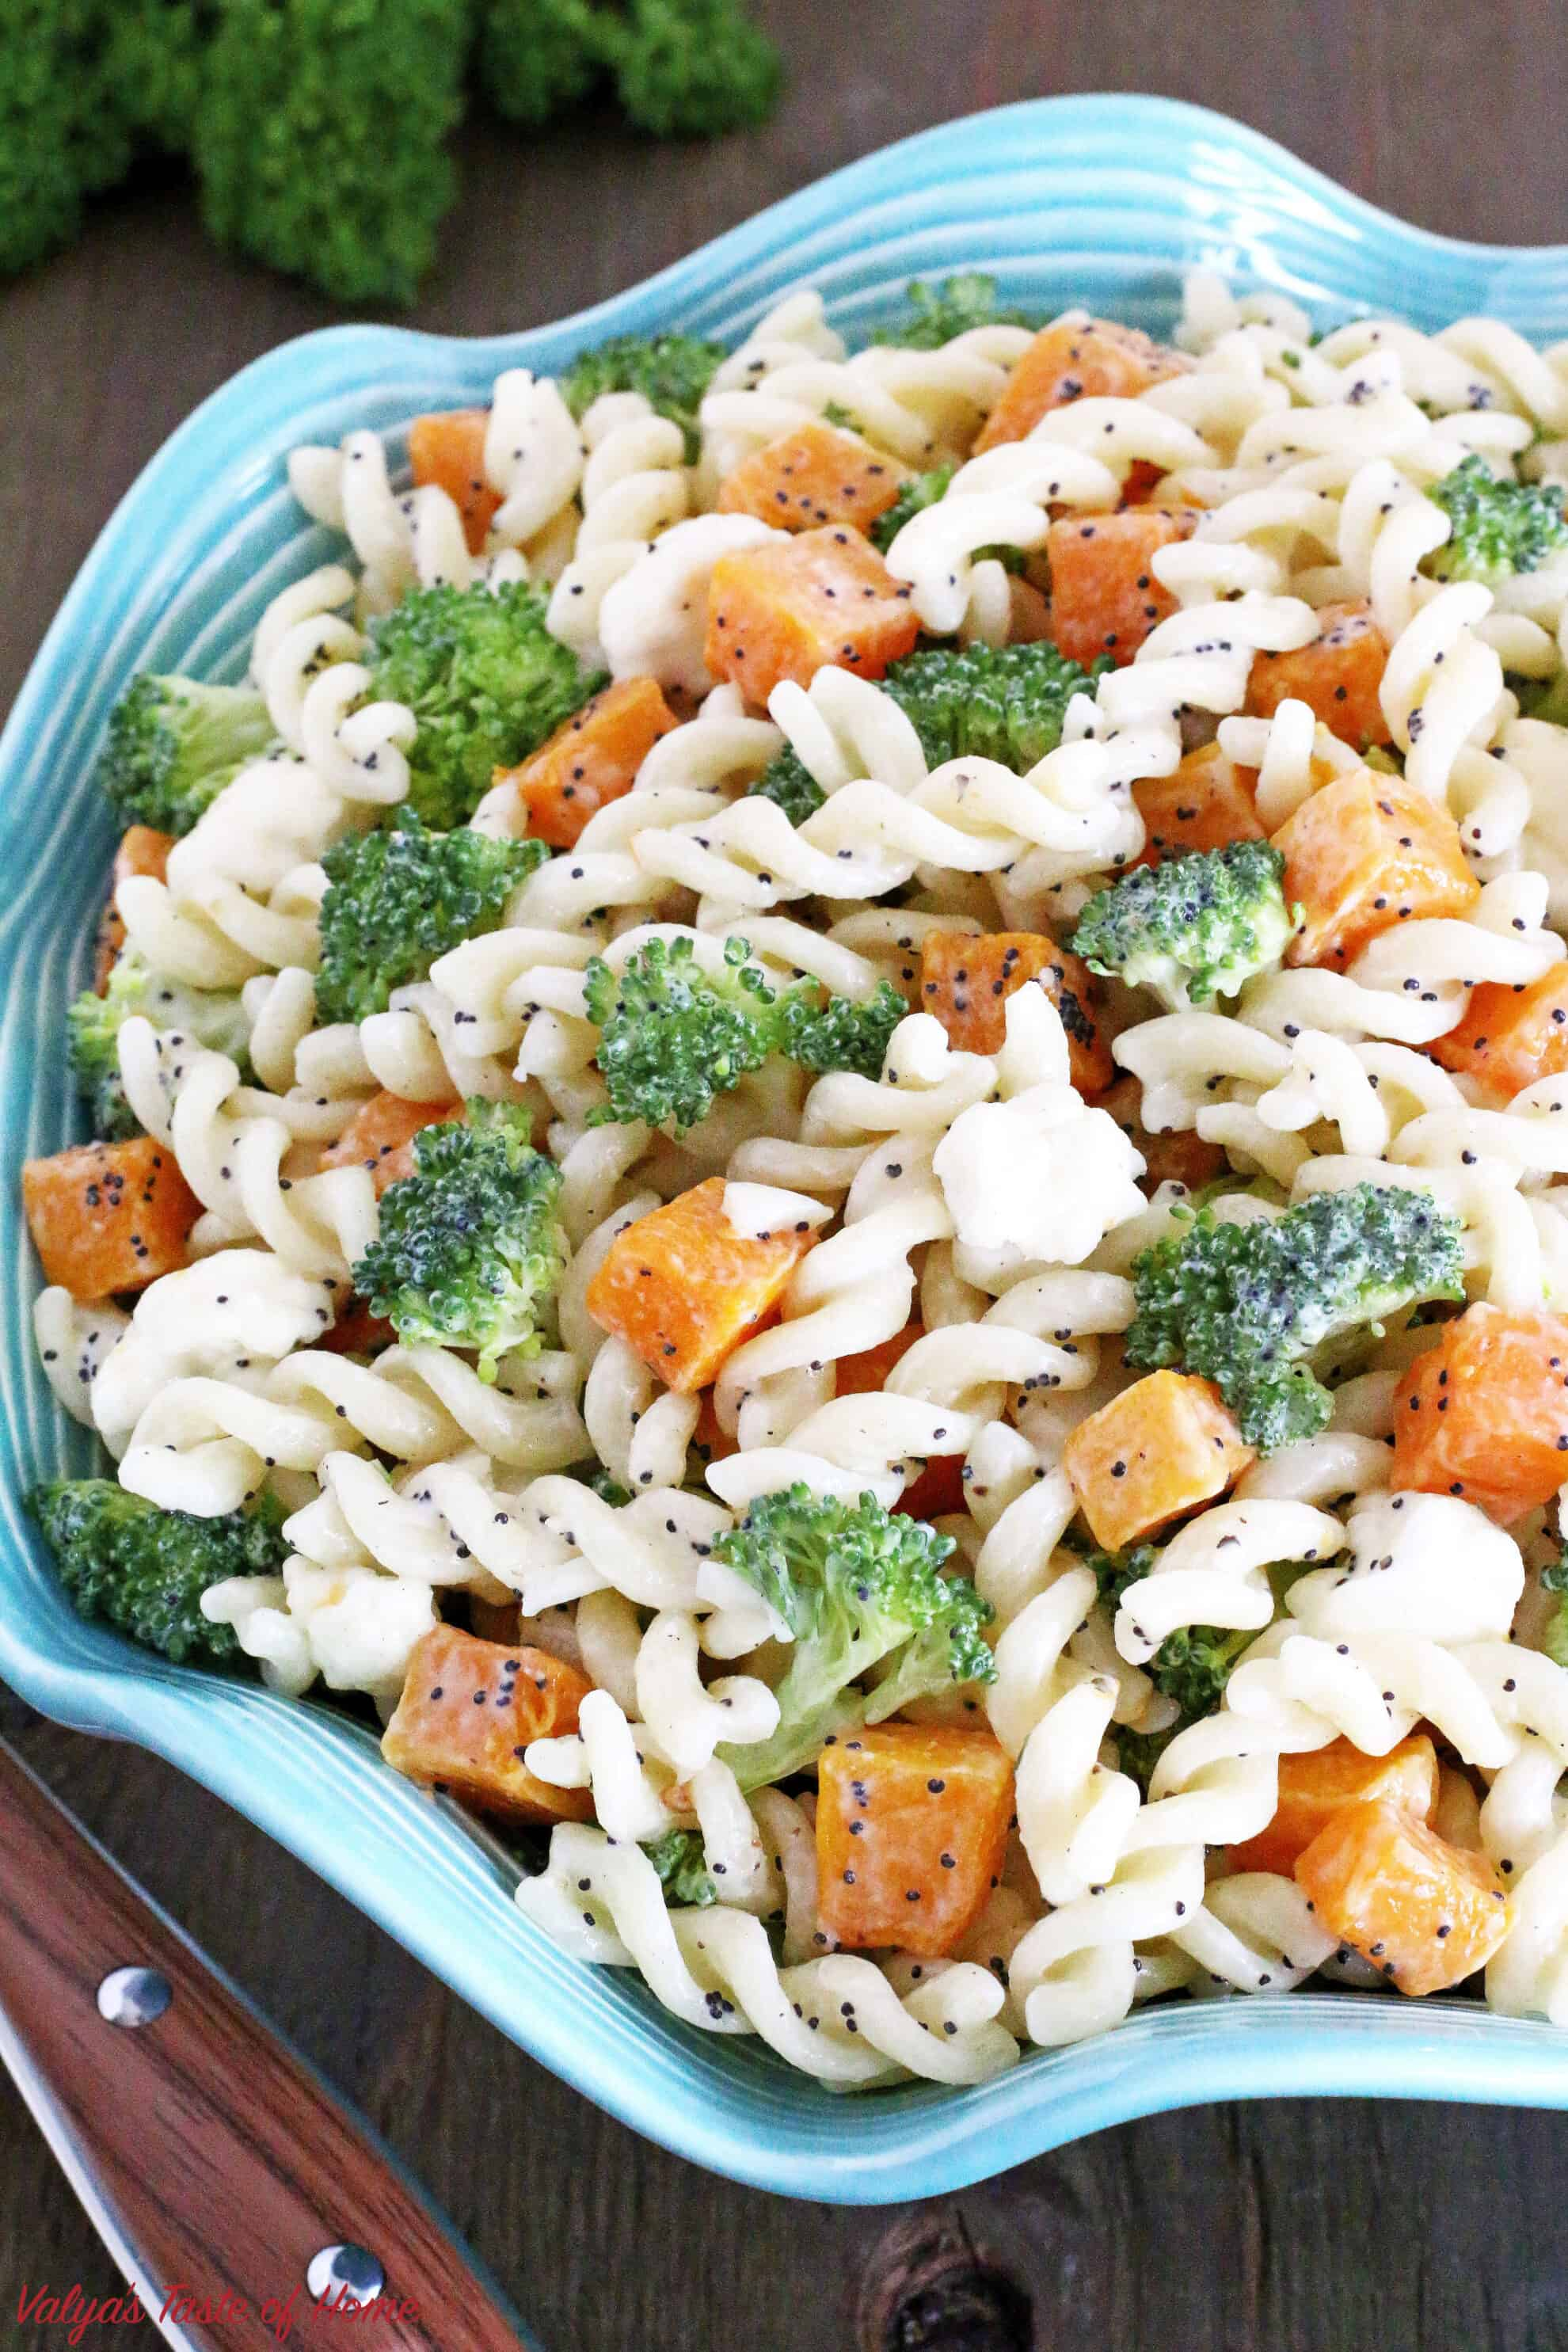 This make ahead, and crowd-pleasing side dish is another gem in a Thanksgiving spread. Or any gathering, really. Organic pasta tossed with fresh broccoli, cauliflower, roasted butternut squash and dressed with homemade ranch makes this salad taste absolutely incredible!